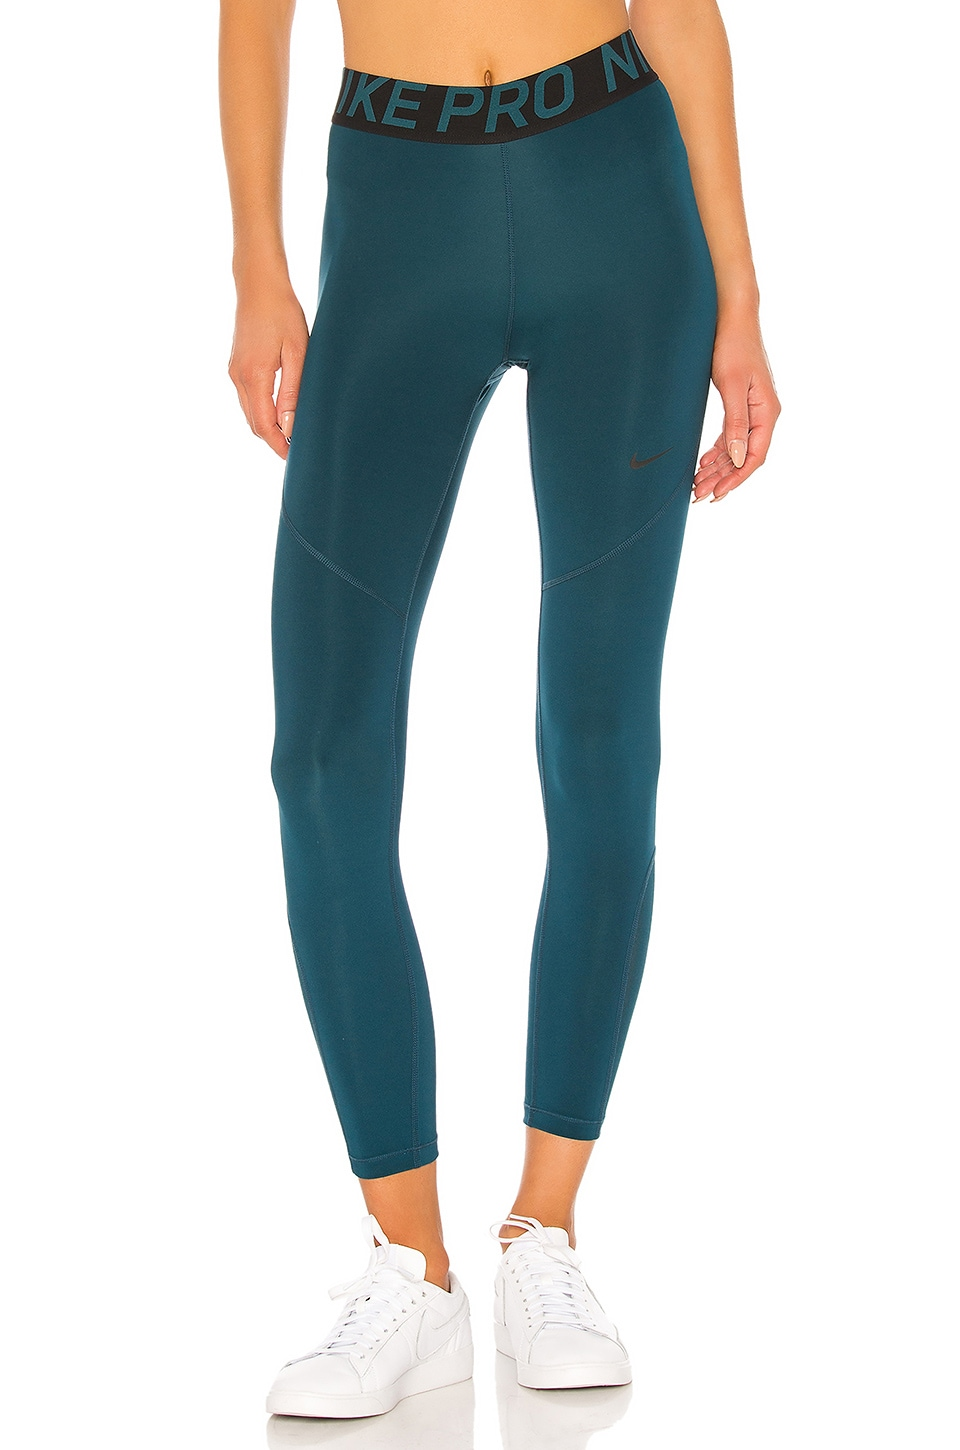 Nike NP Crop 7/8 Tight in Midnight Turquoise